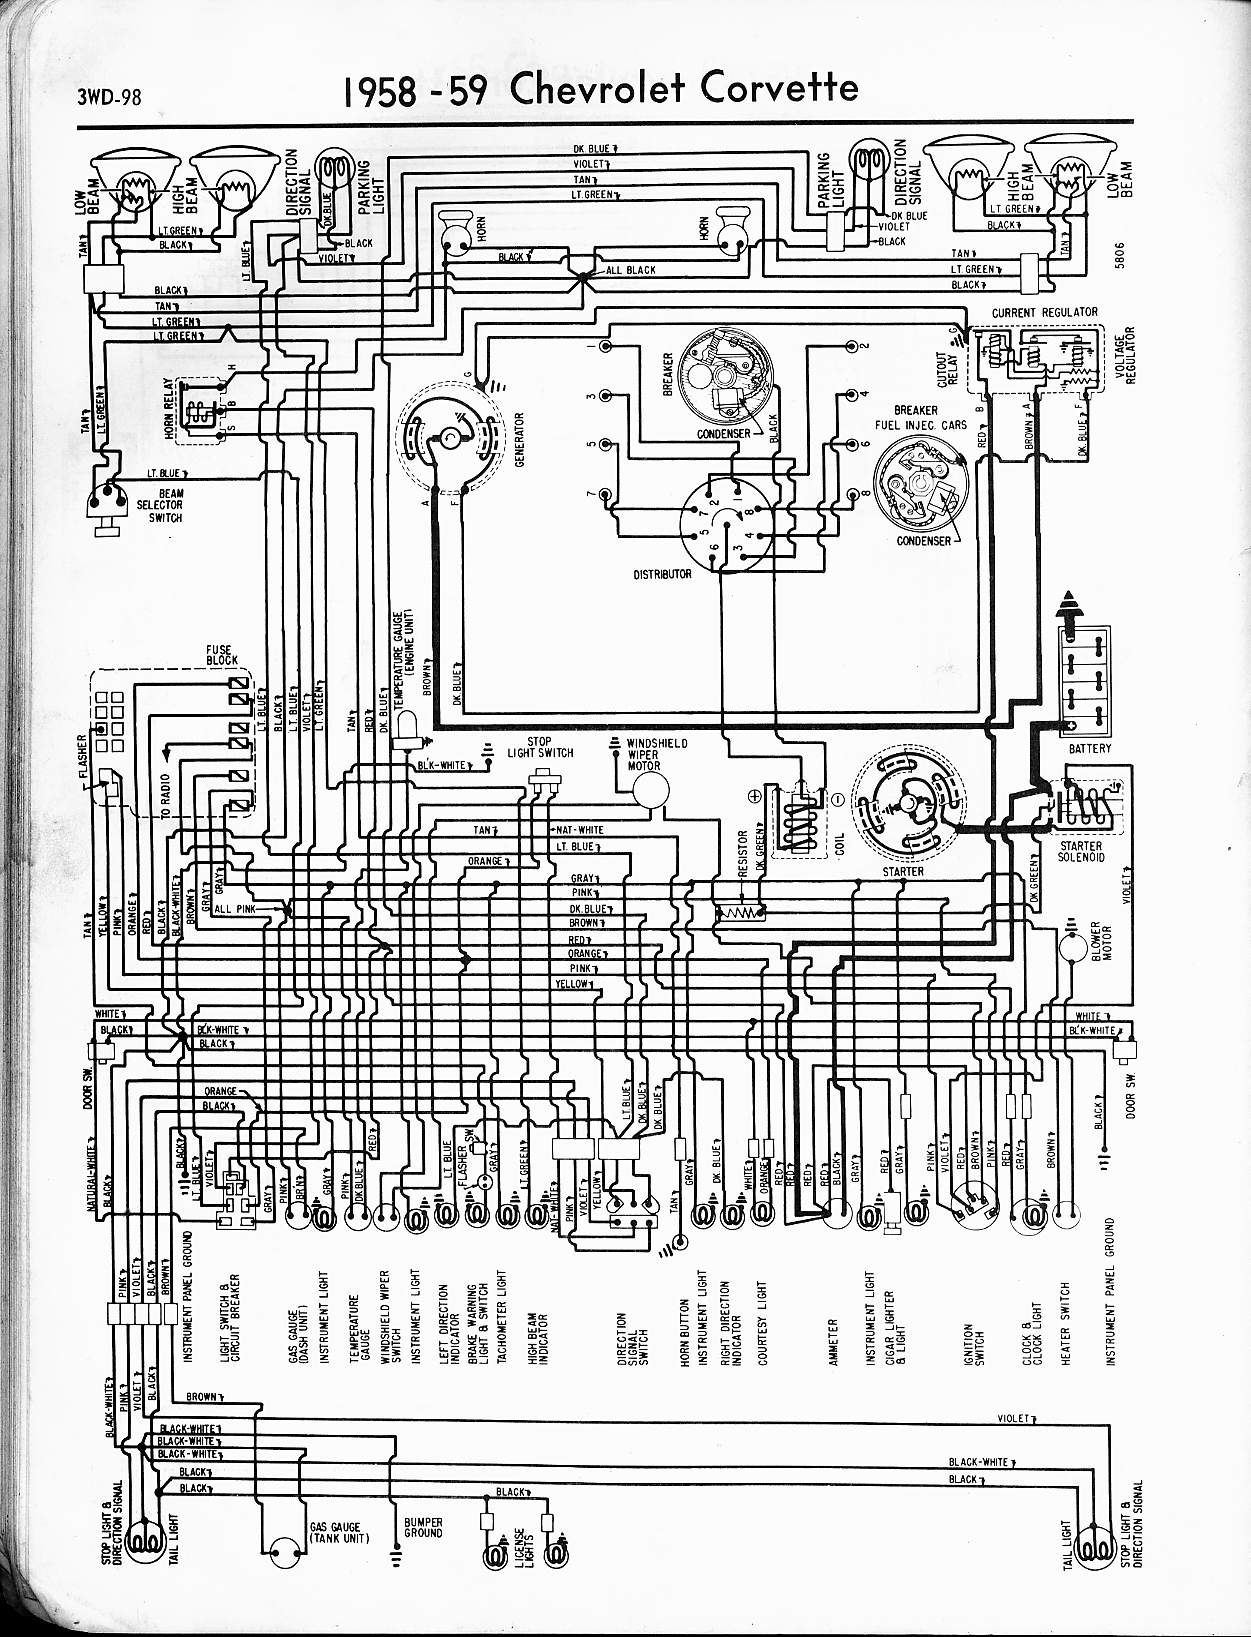 MWireChev58_3WD 098 57 65 chevy wiring diagrams corvette wiring diagram at gsmportal.co